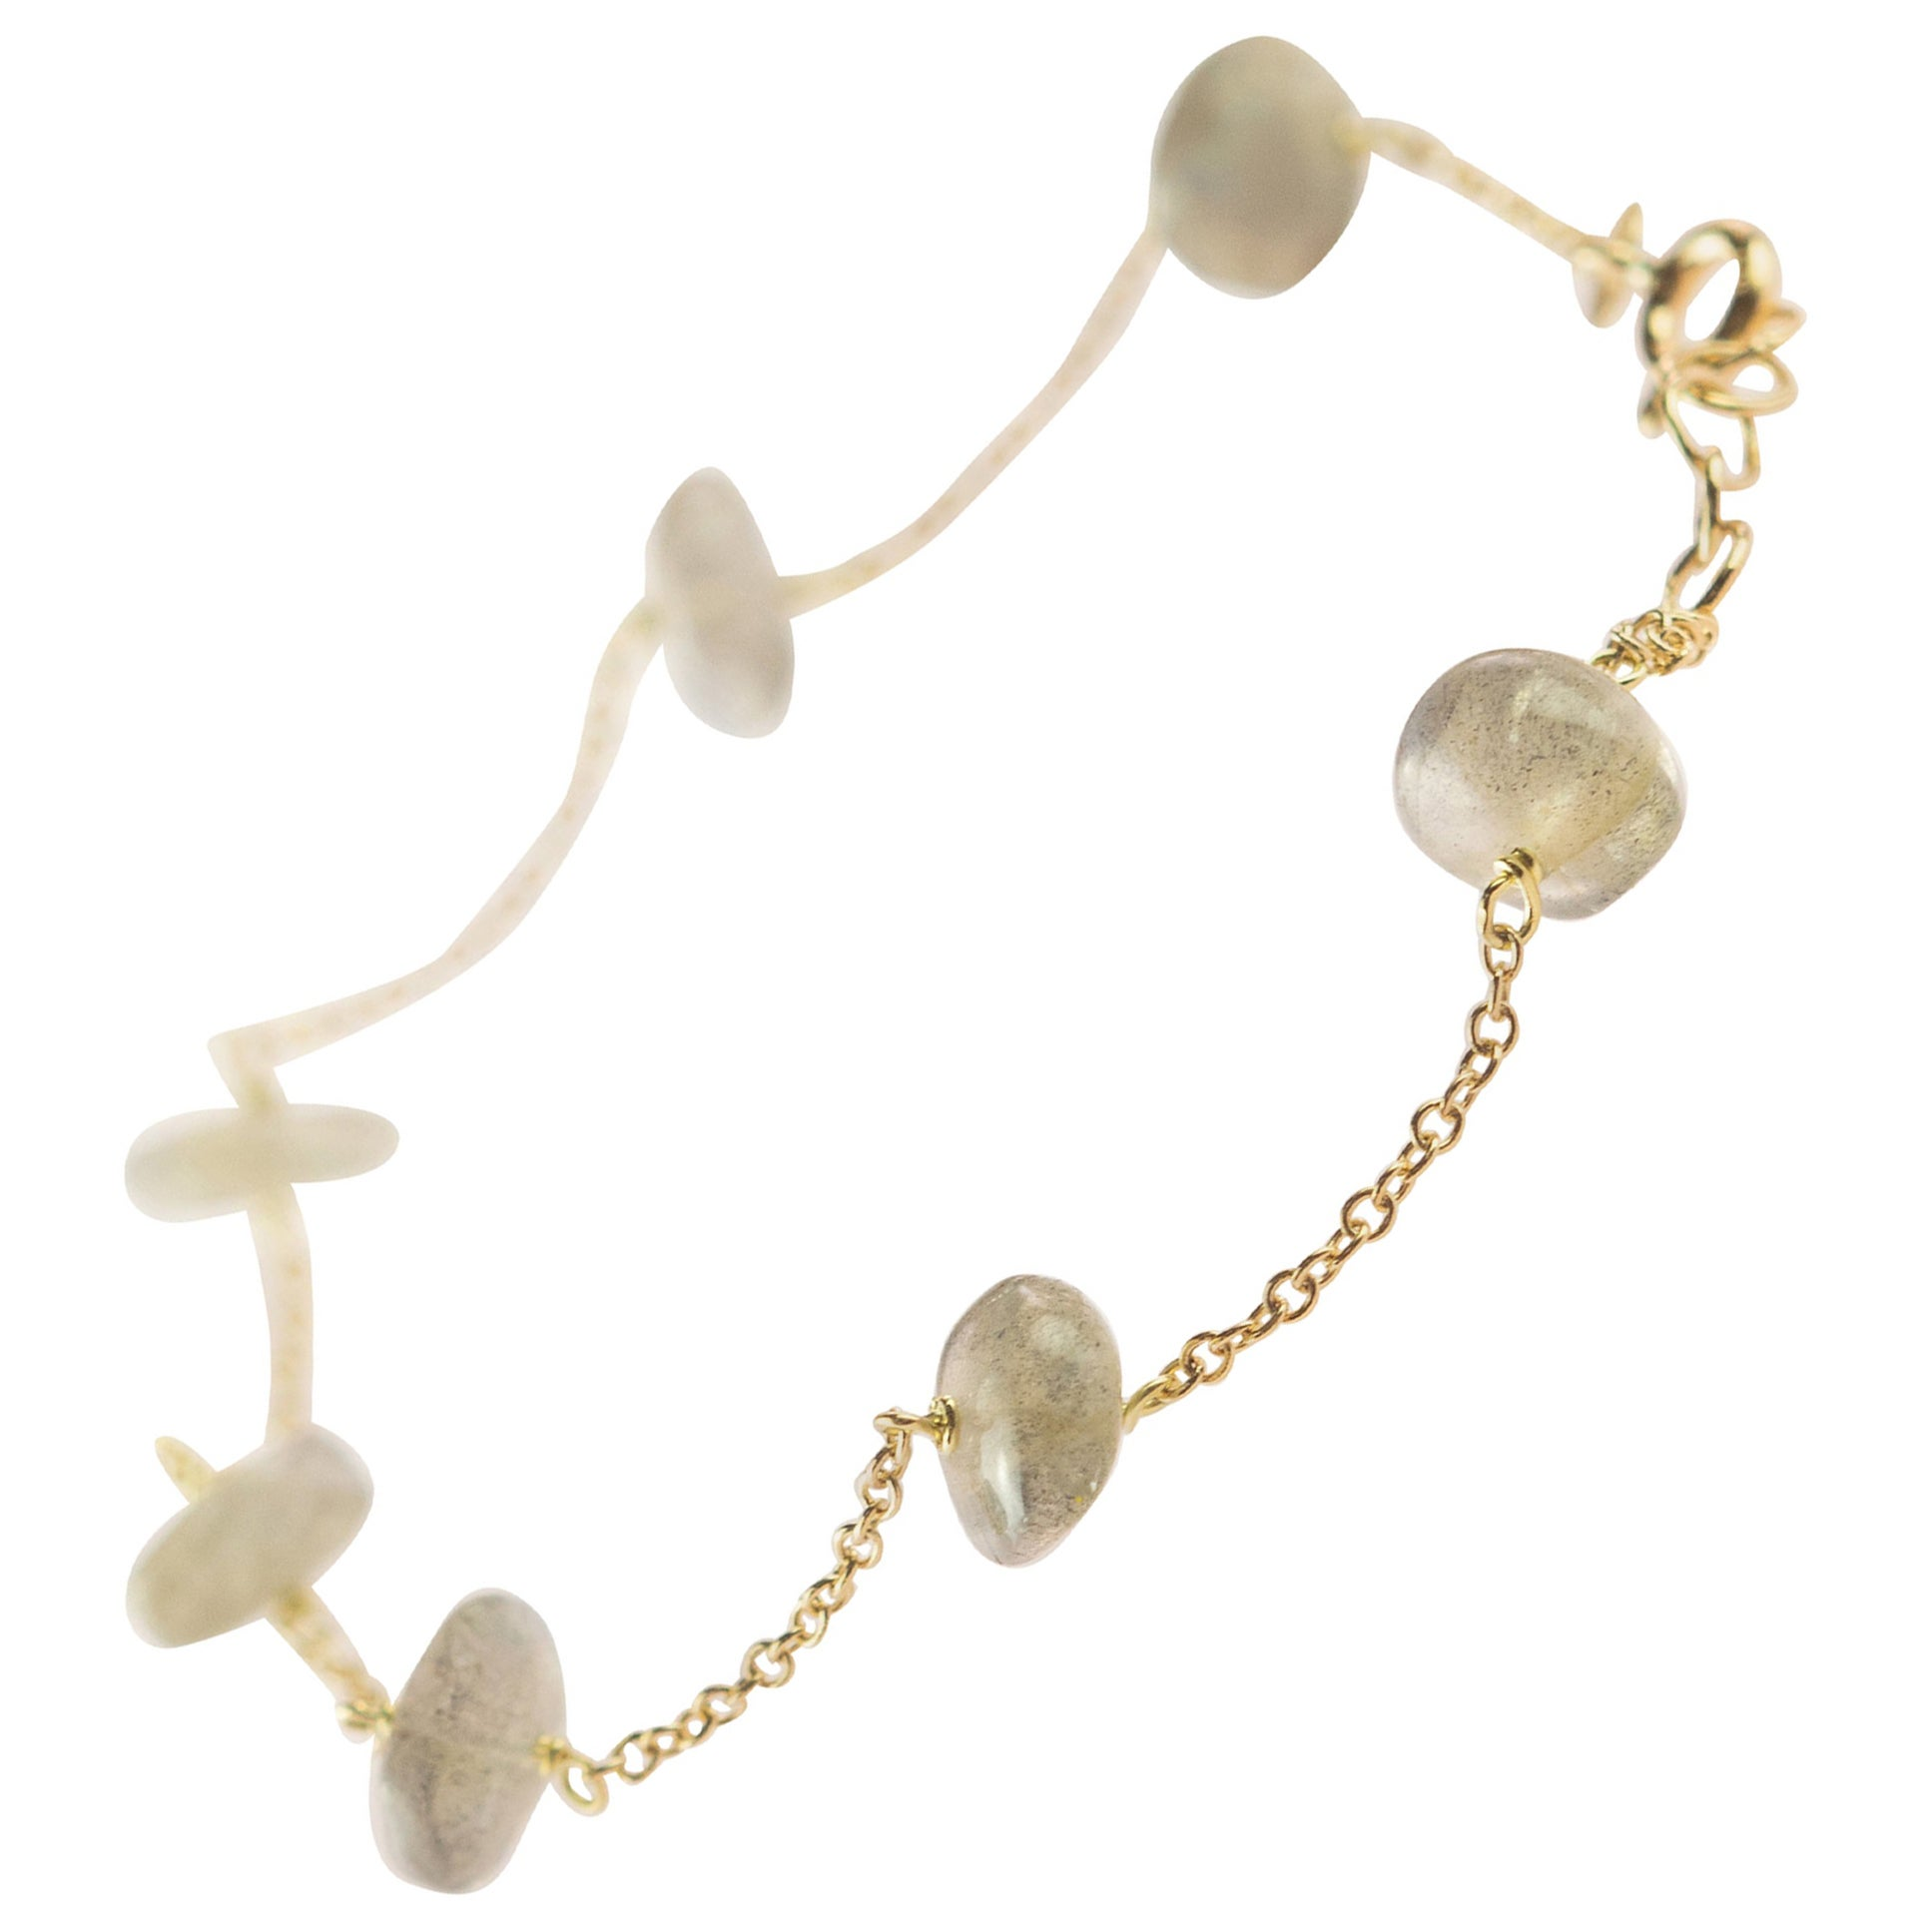 Intini Jewes Gold Plate Chain Cat's Eye Rondelles Handmade Anklet Bracelet